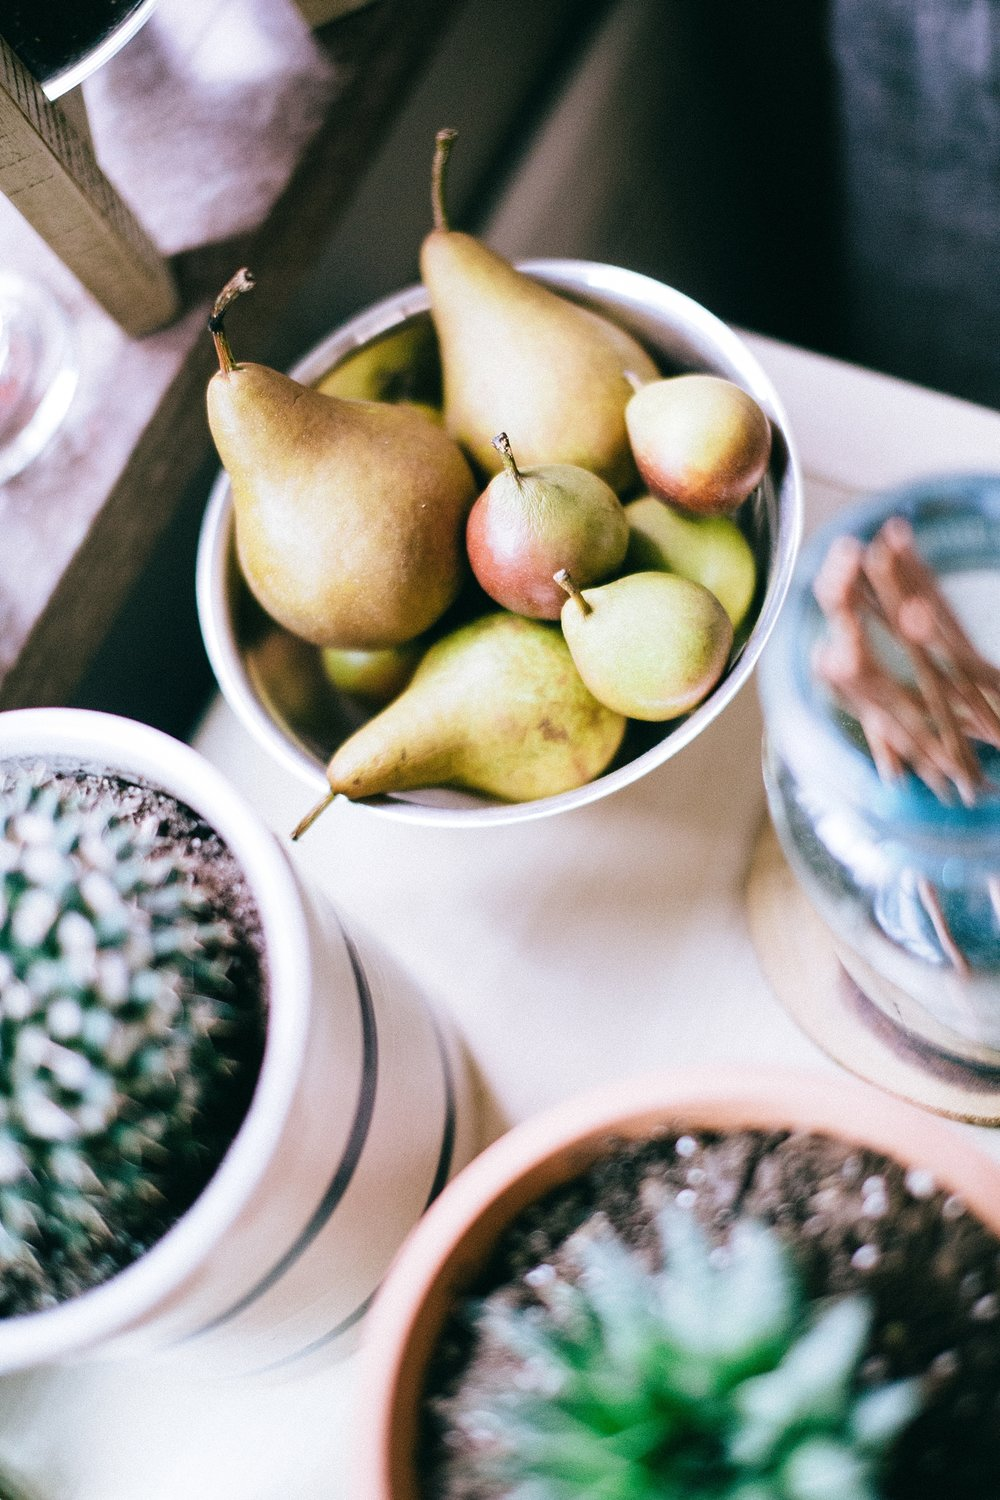 Also on the plant stand is a bowl of pears in a silver Revere Bowl, which was brought during a back to school from a visit from his Grandma. Chris loves to mix different organic items on his plant stand.